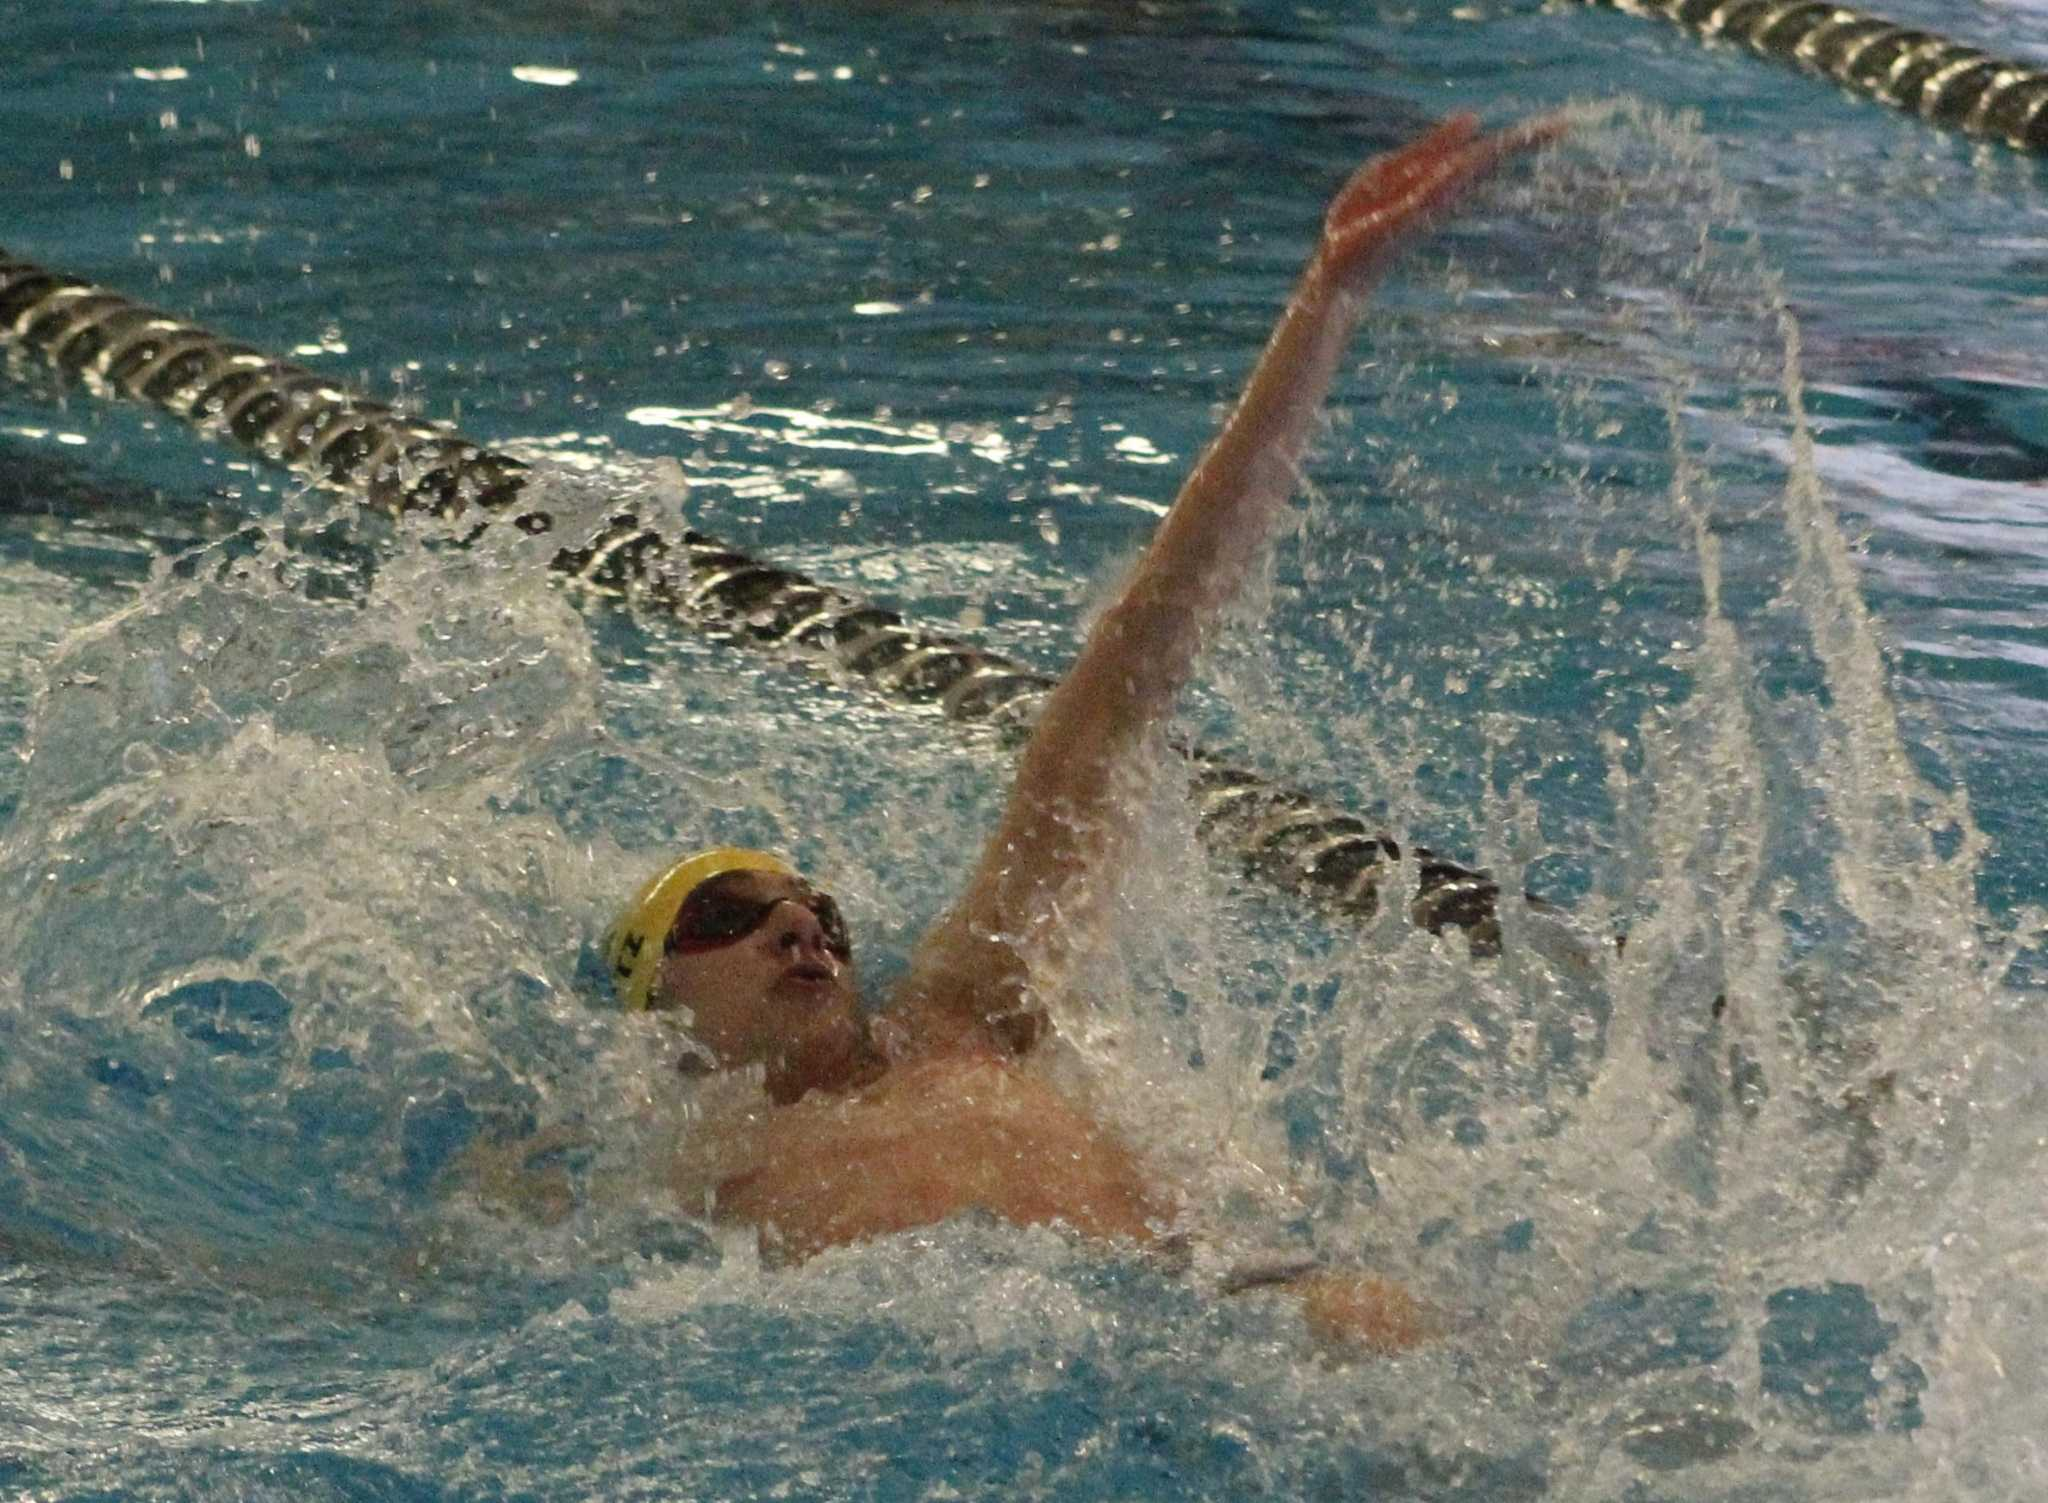 swimming and diving championships